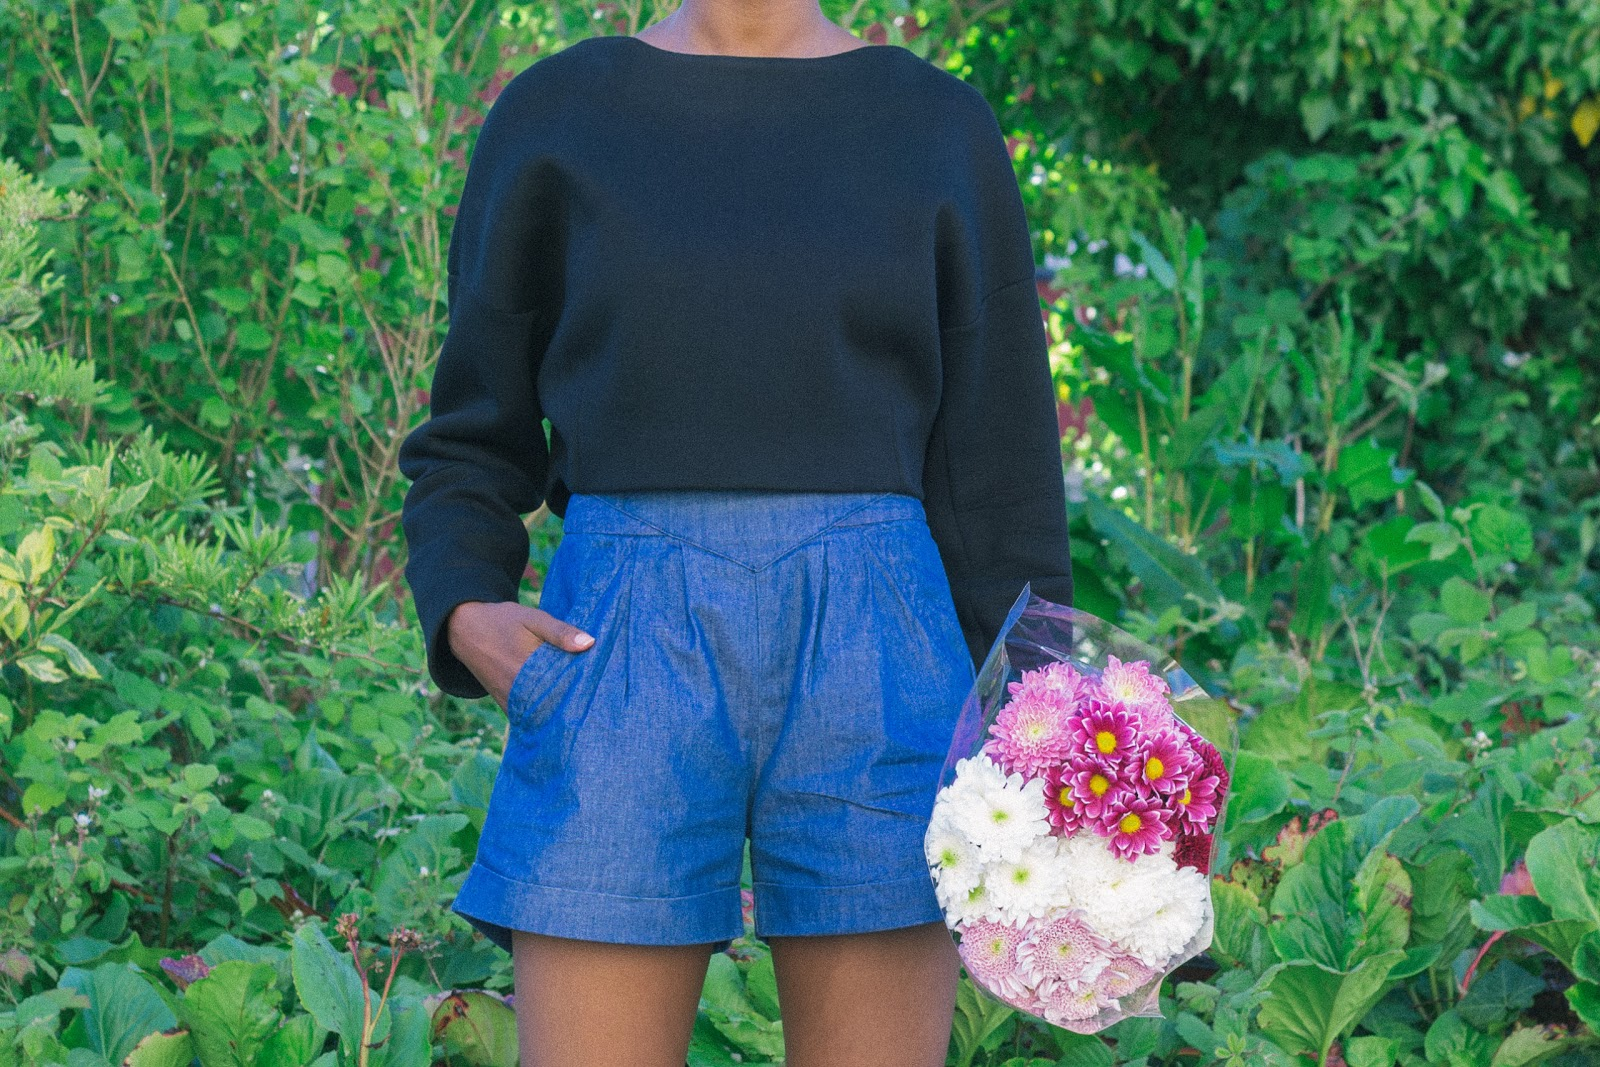 Zara Neoprene Jumper, Urban Outfitters Shorts,  Floral Shoot,